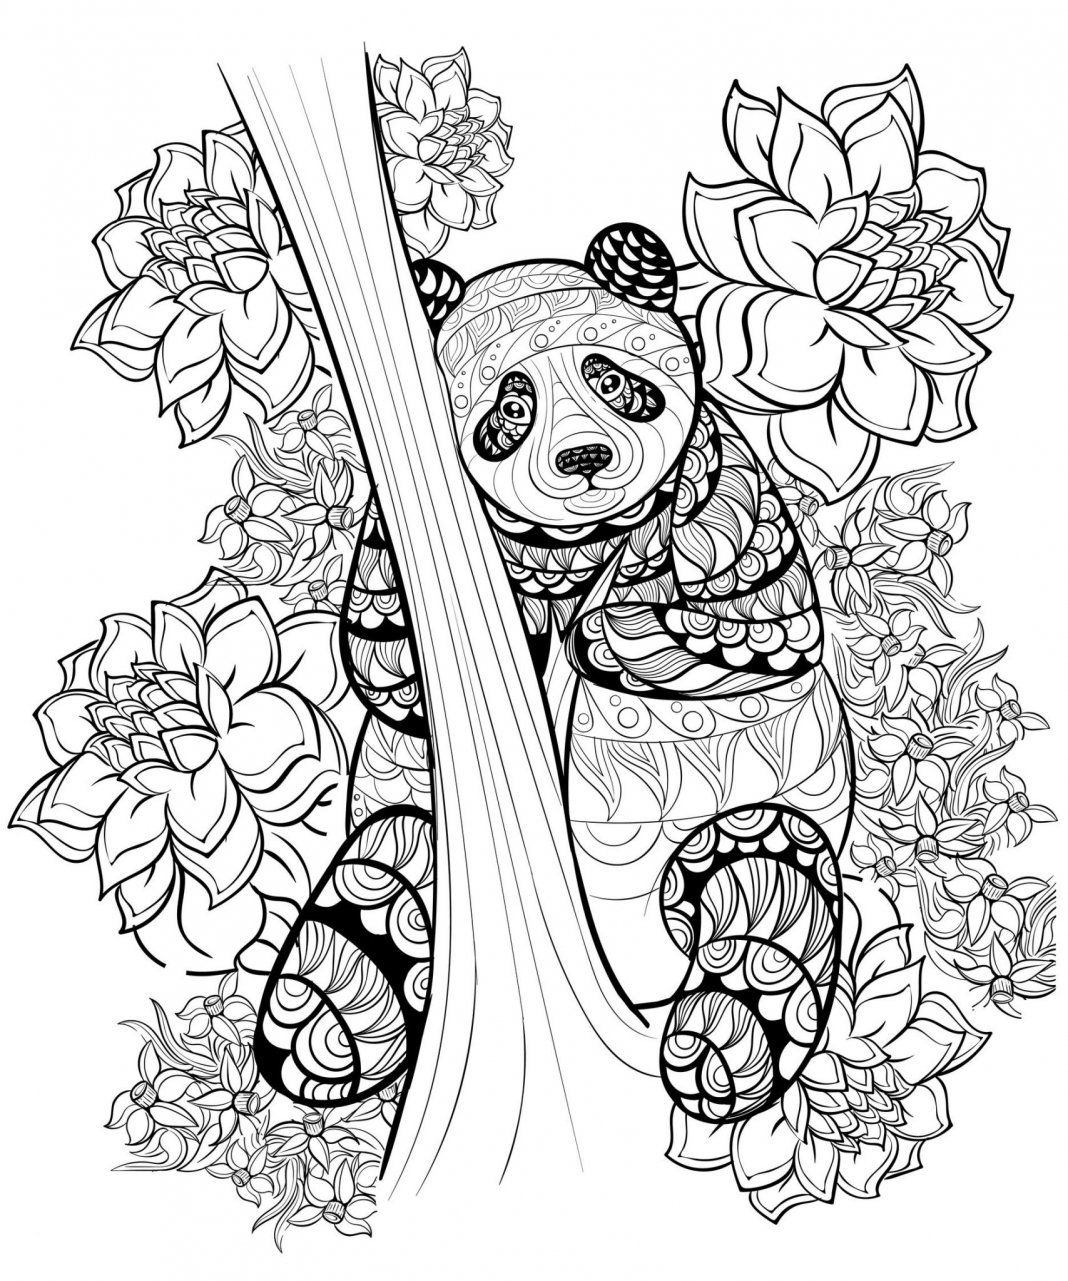 Abstrakcyjne Kolorowanki Dla Dzieci I Doroslych In 2020 Panda Coloring Pages Coloring Pages For Teenagers Animal Coloring Pages